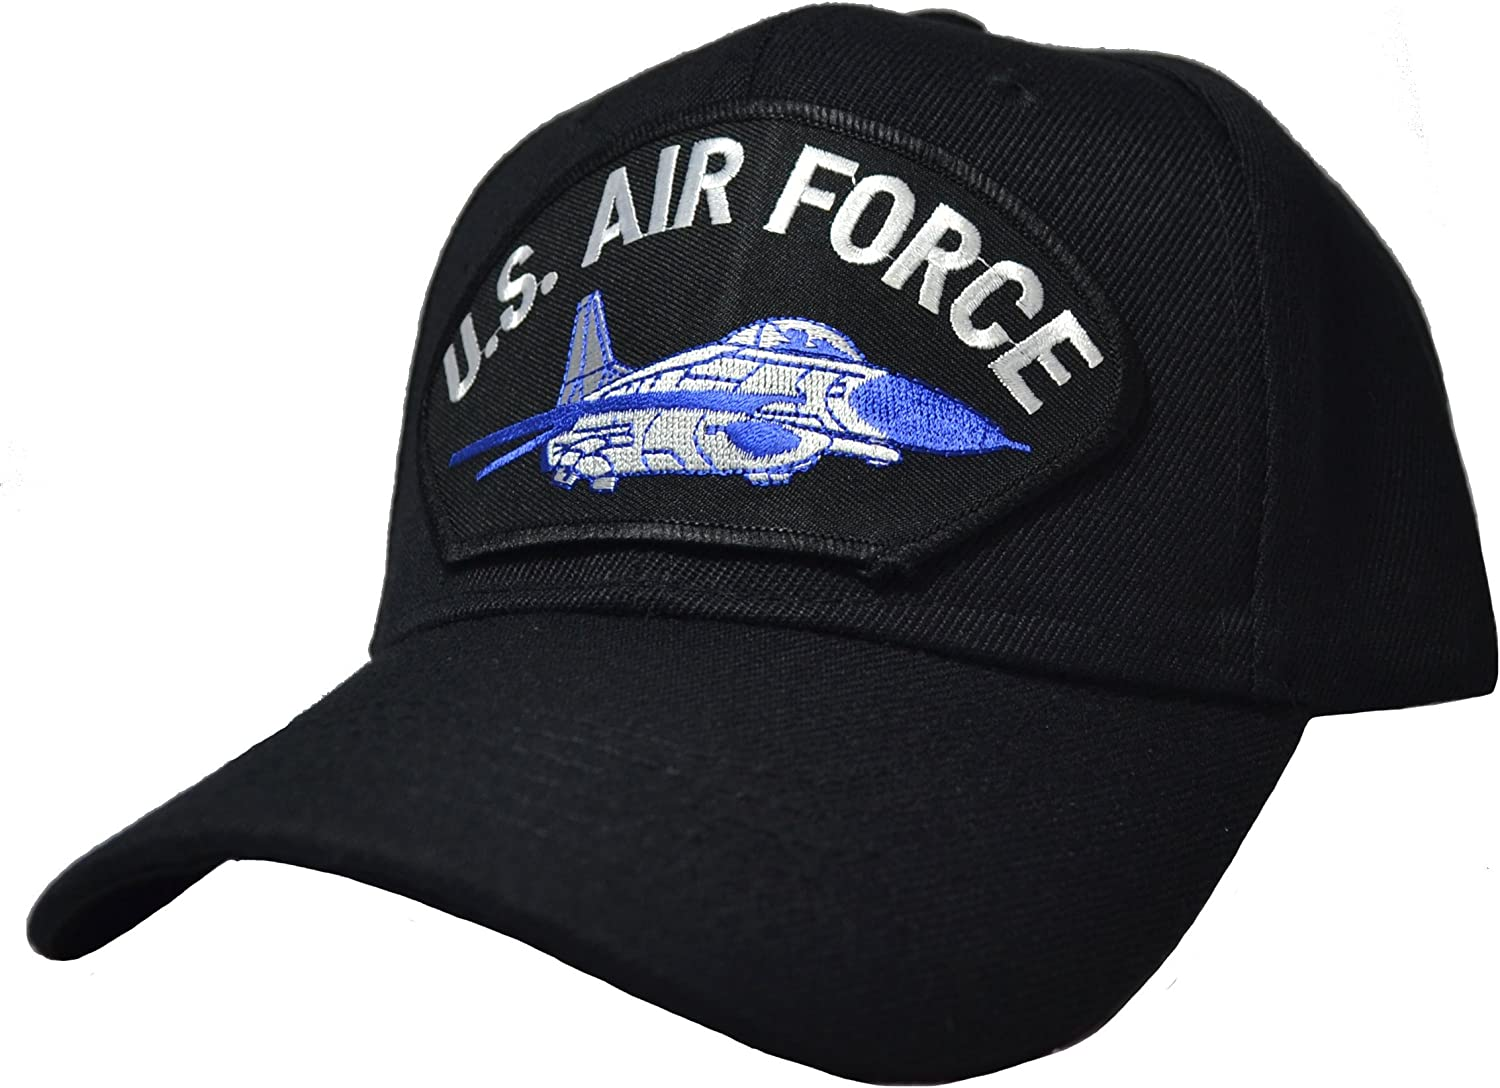 US Air Force Plane Ball Cap Black